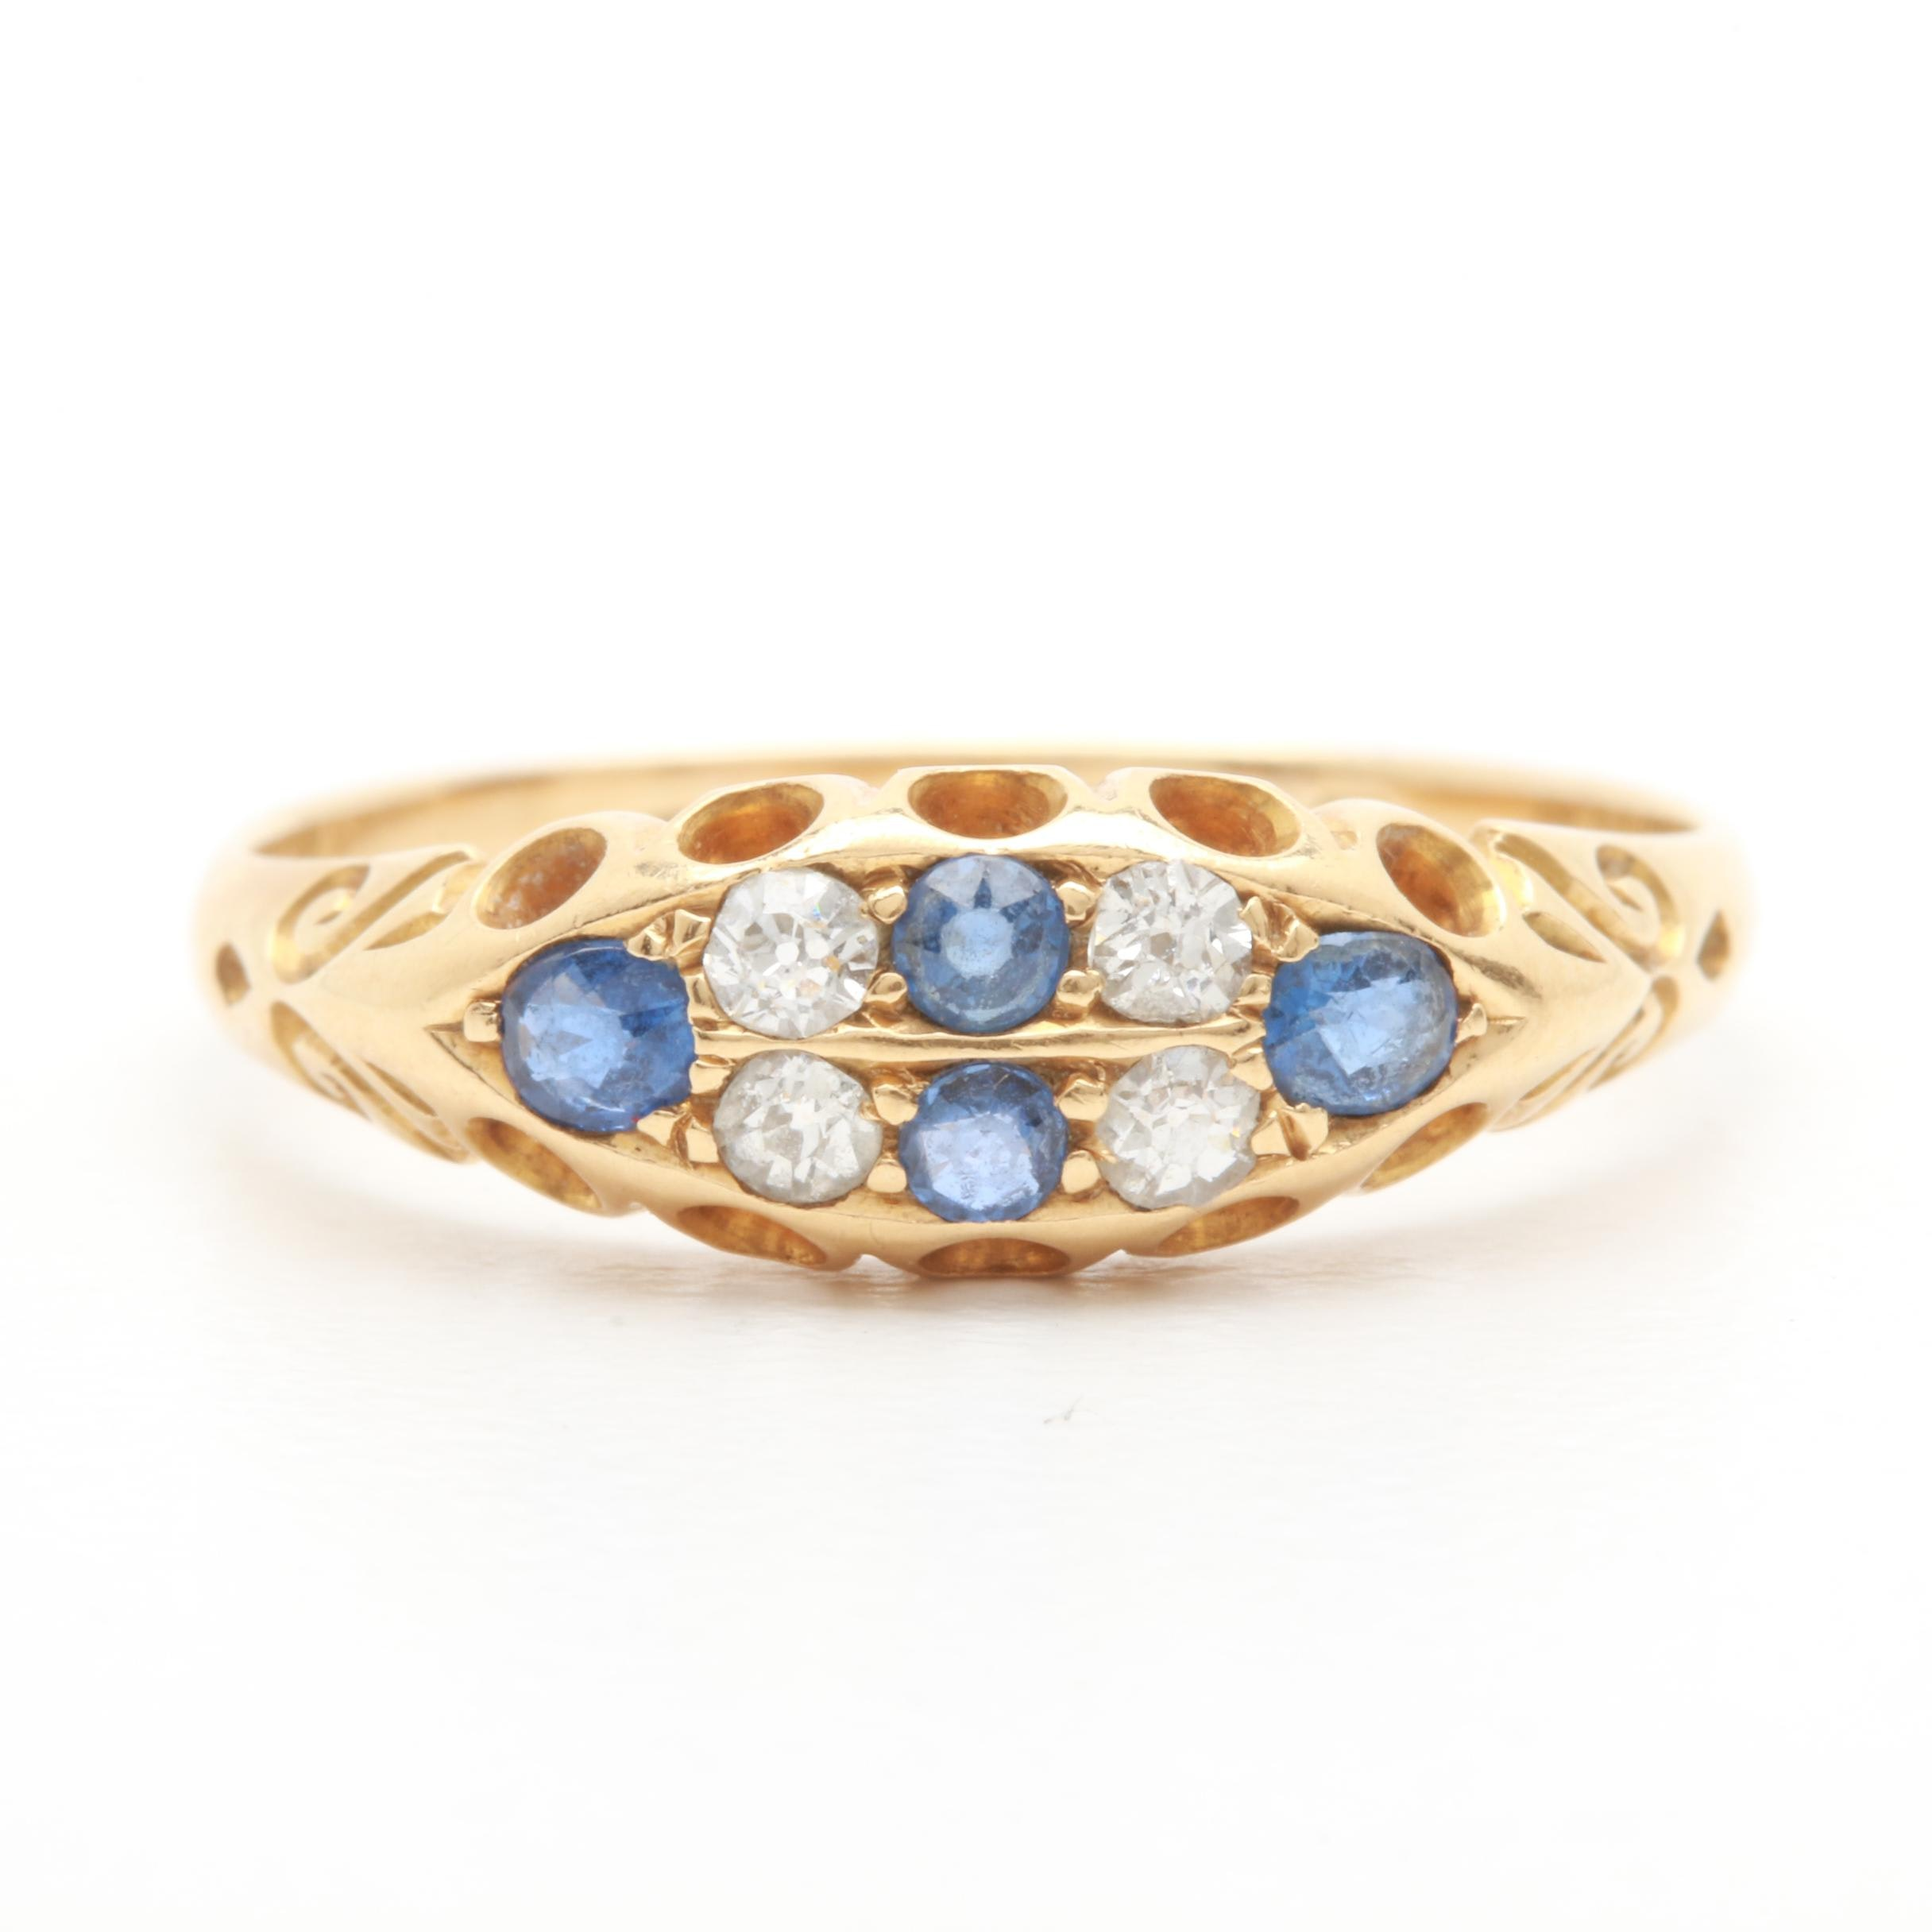 Antique 1905 18K Yellow Gold Blue Sapphire and Diamond Ring